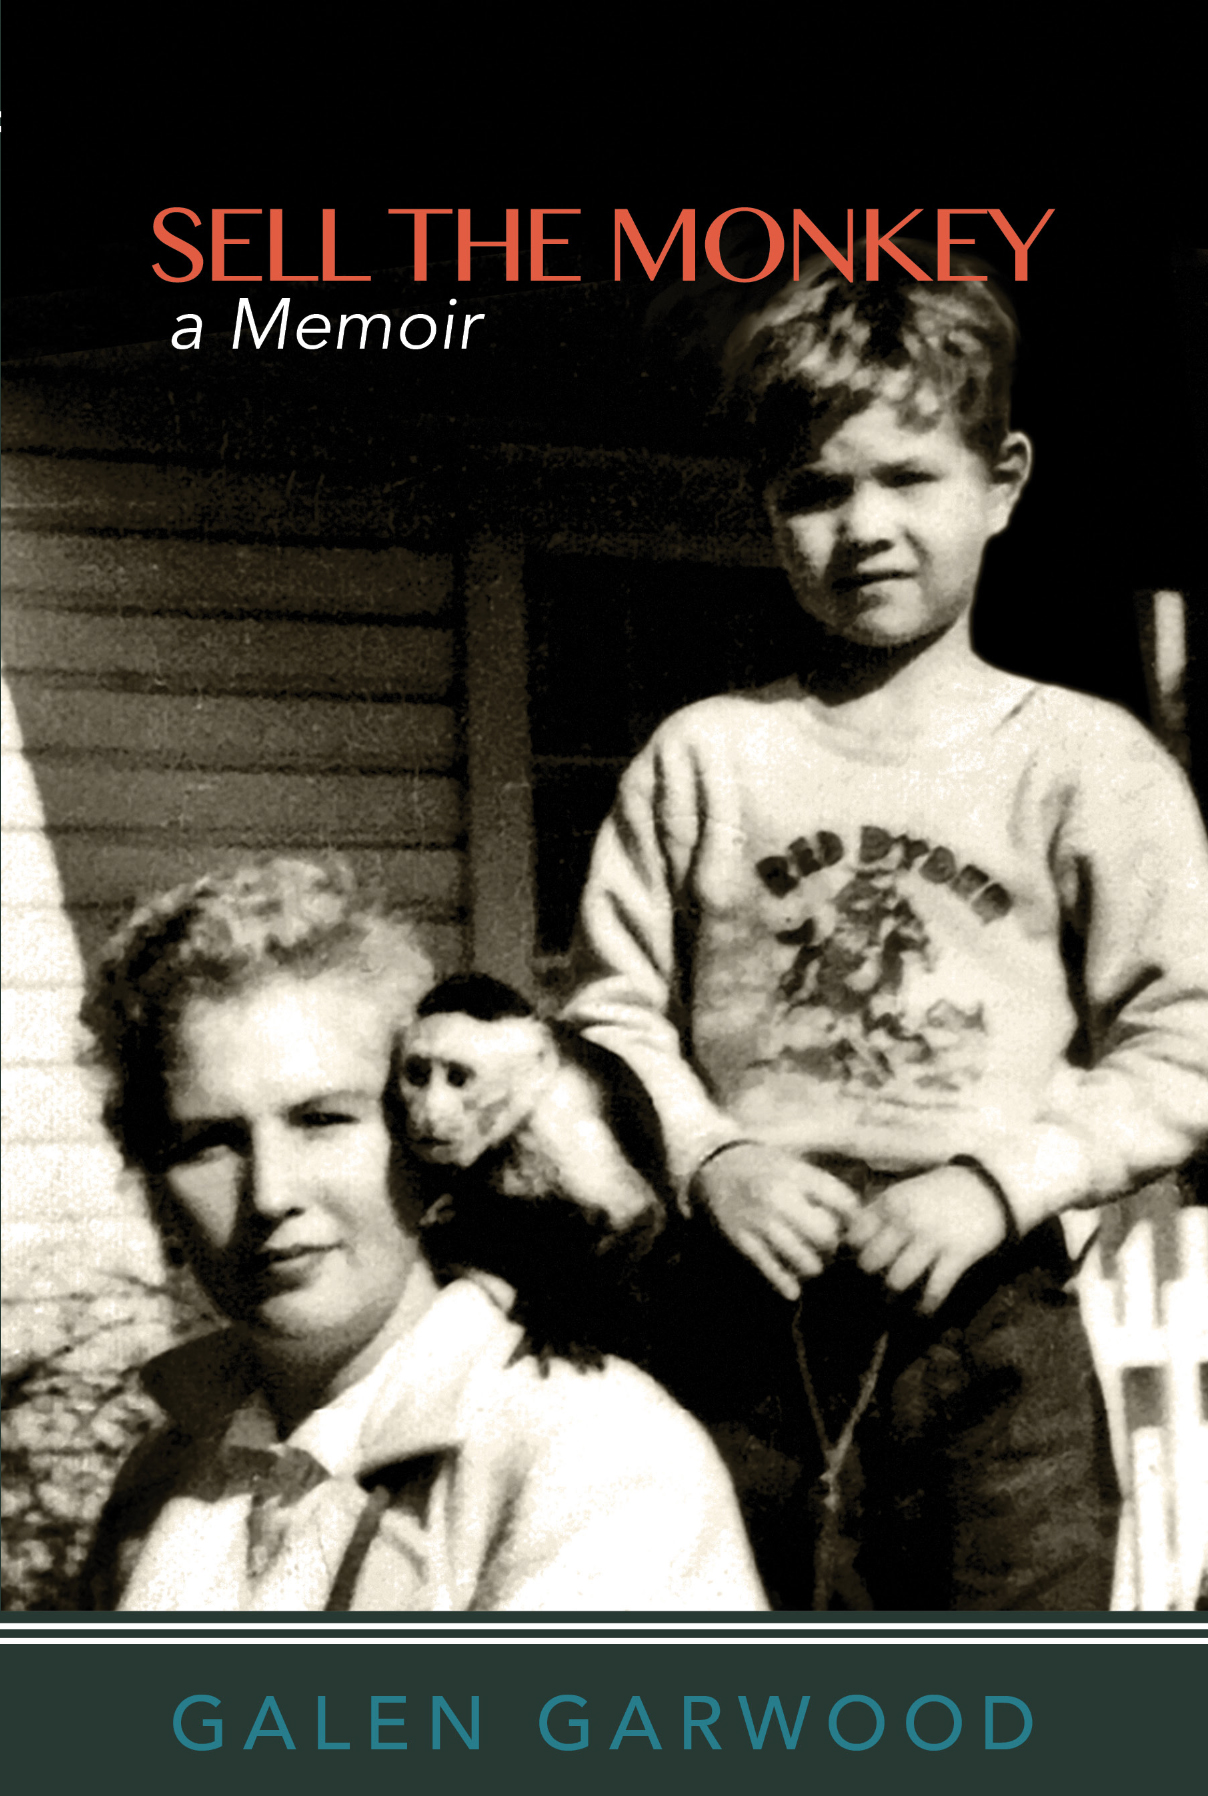 SELL THE MONKEY, A Memoir